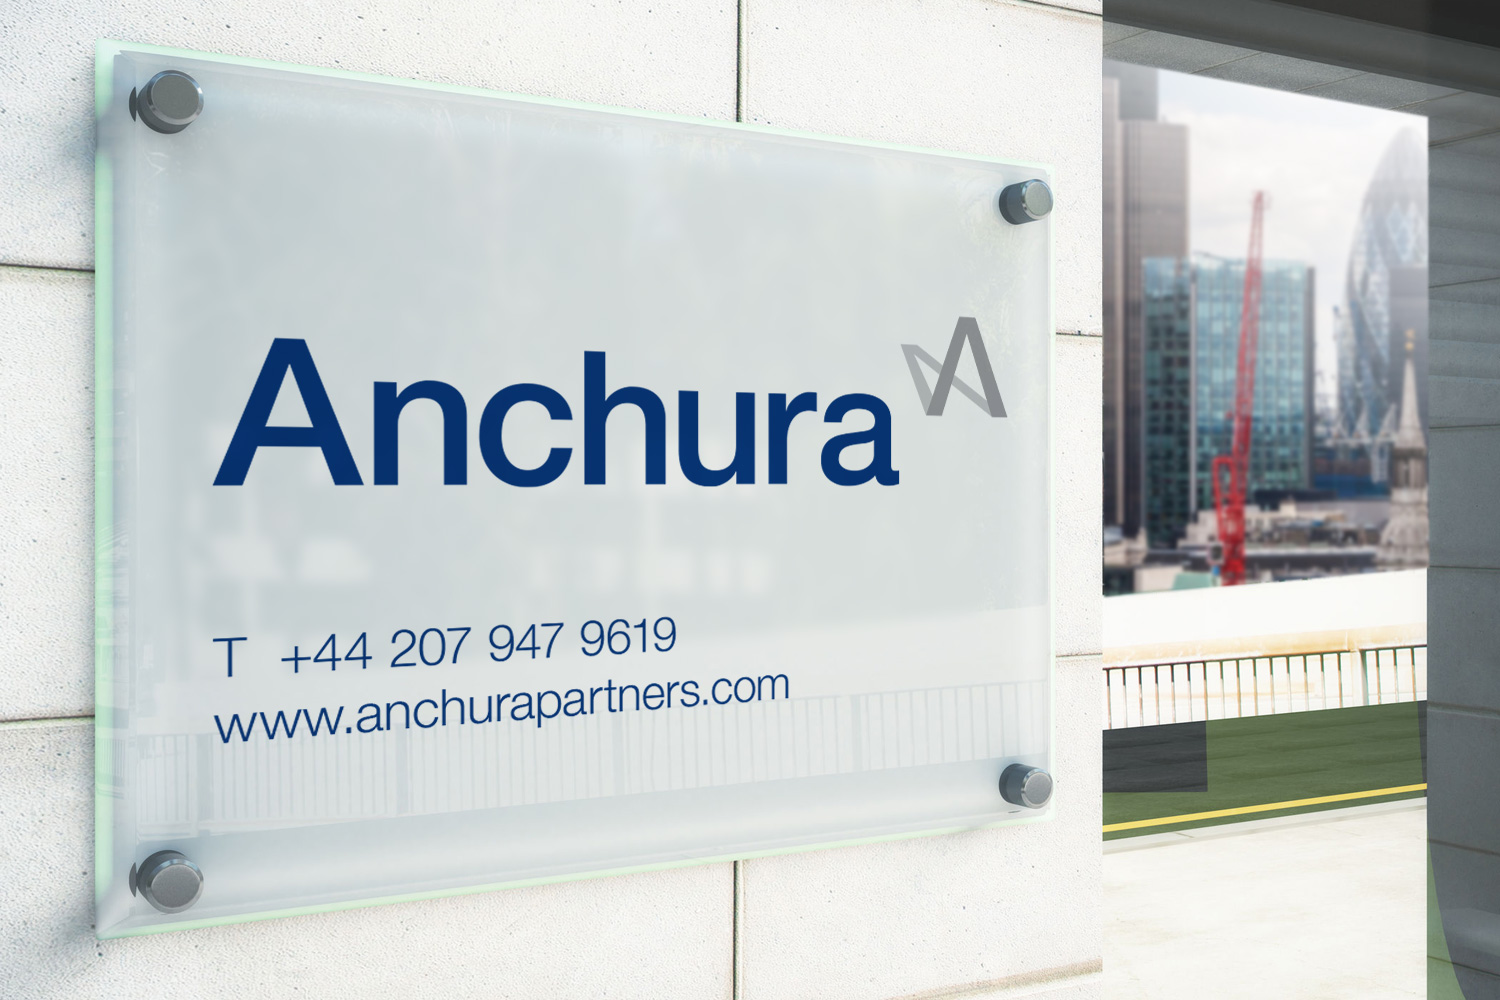 Anchura office sign